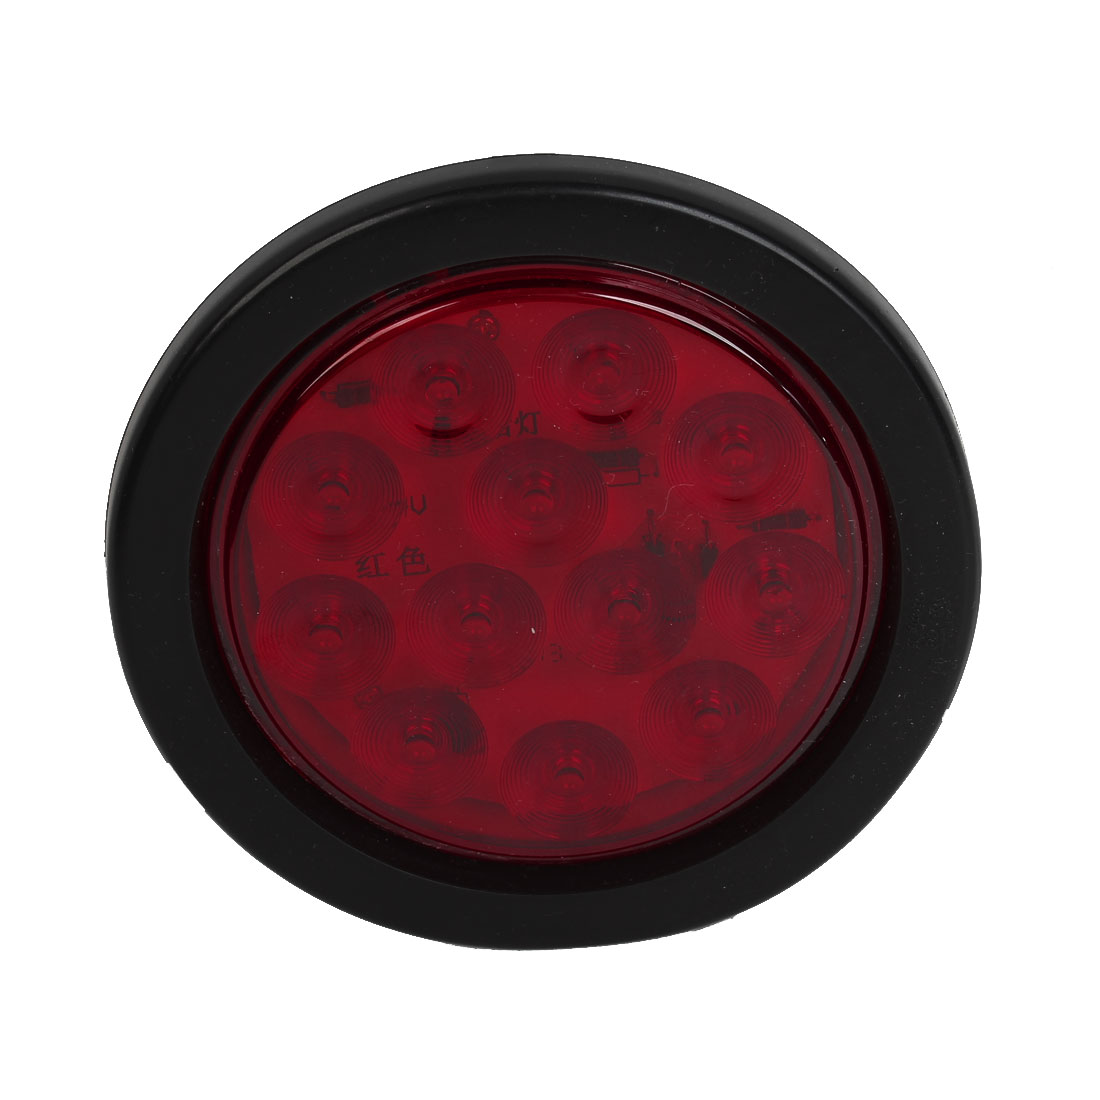 "5.1"" Dia 12 LED Light Round Shaped Rear Stop Tail Lamp Red for Trucks"